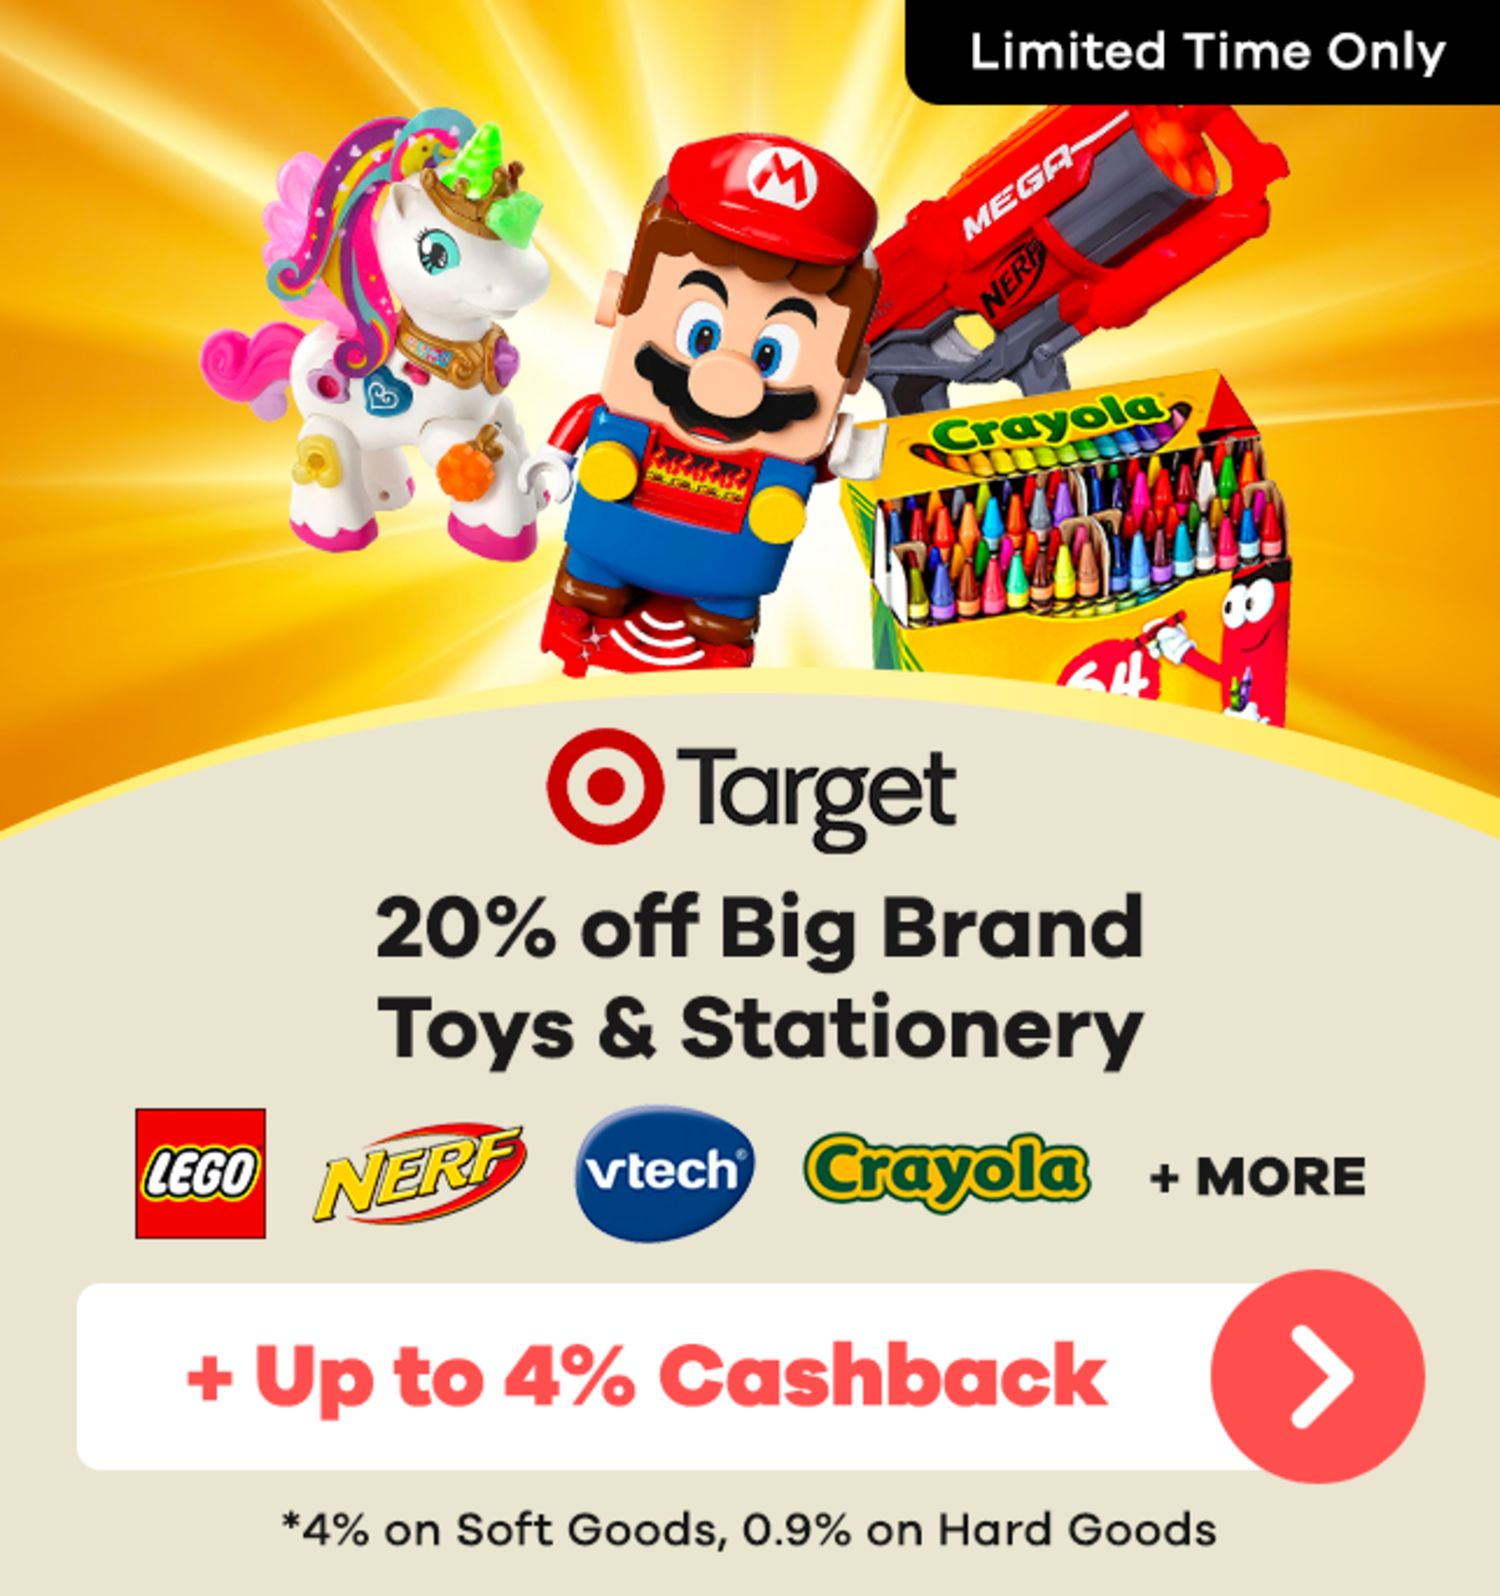 Target - 20% off Big Brand Toys & Stationery